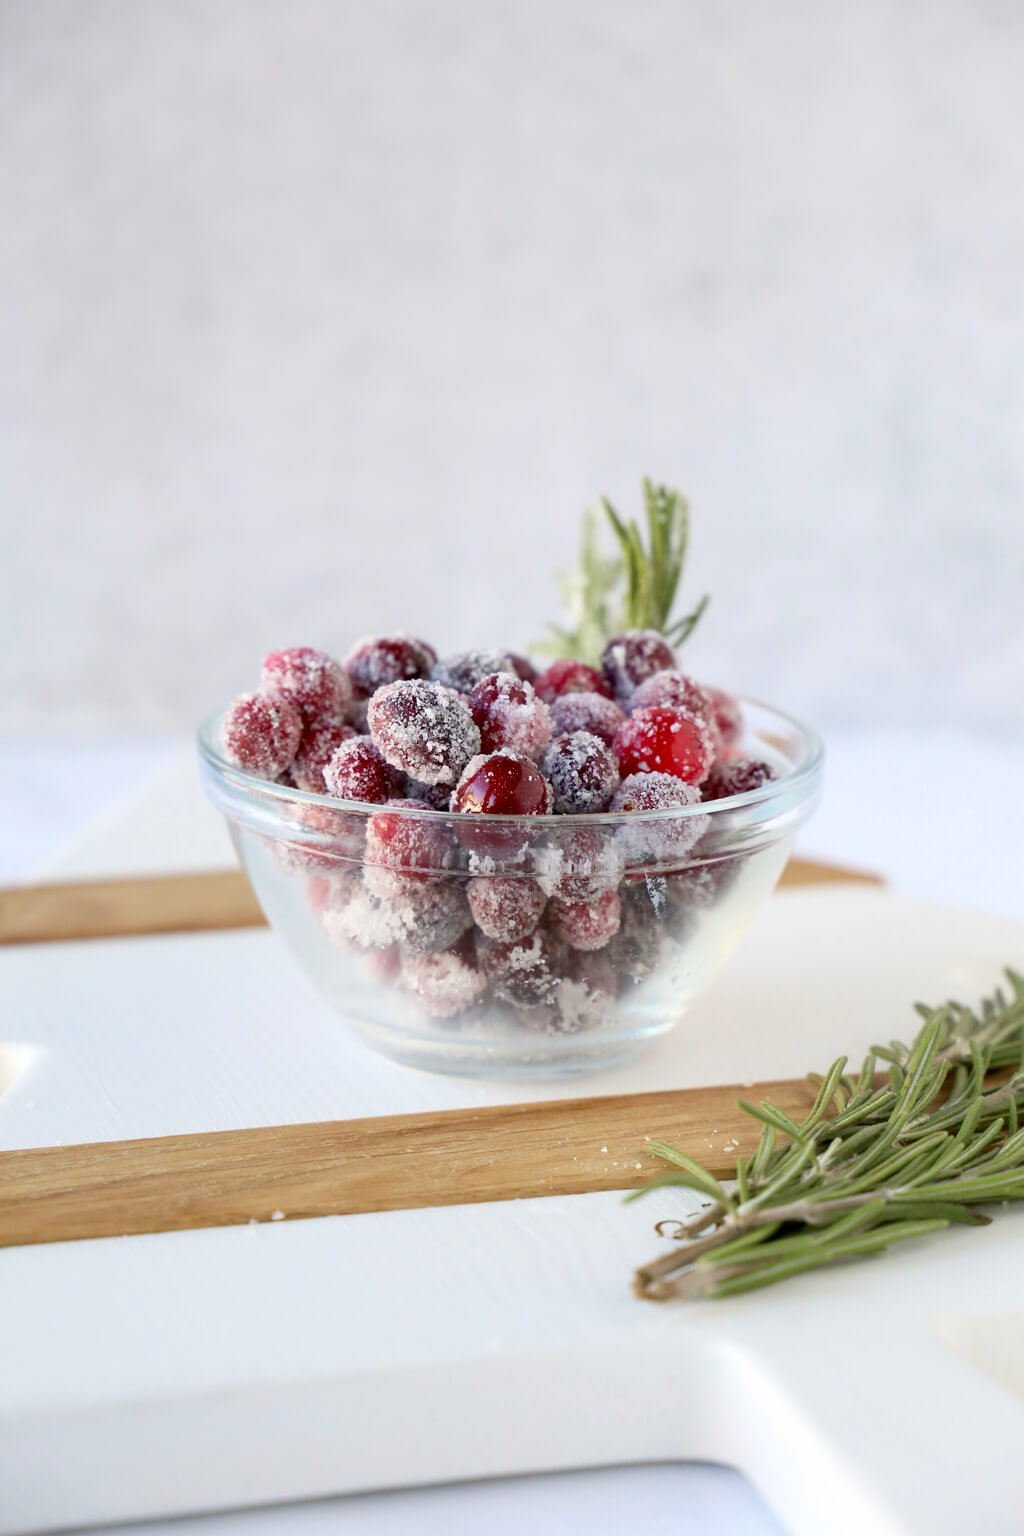 a bowl full of sugared cranberries and a sprig of rosemary